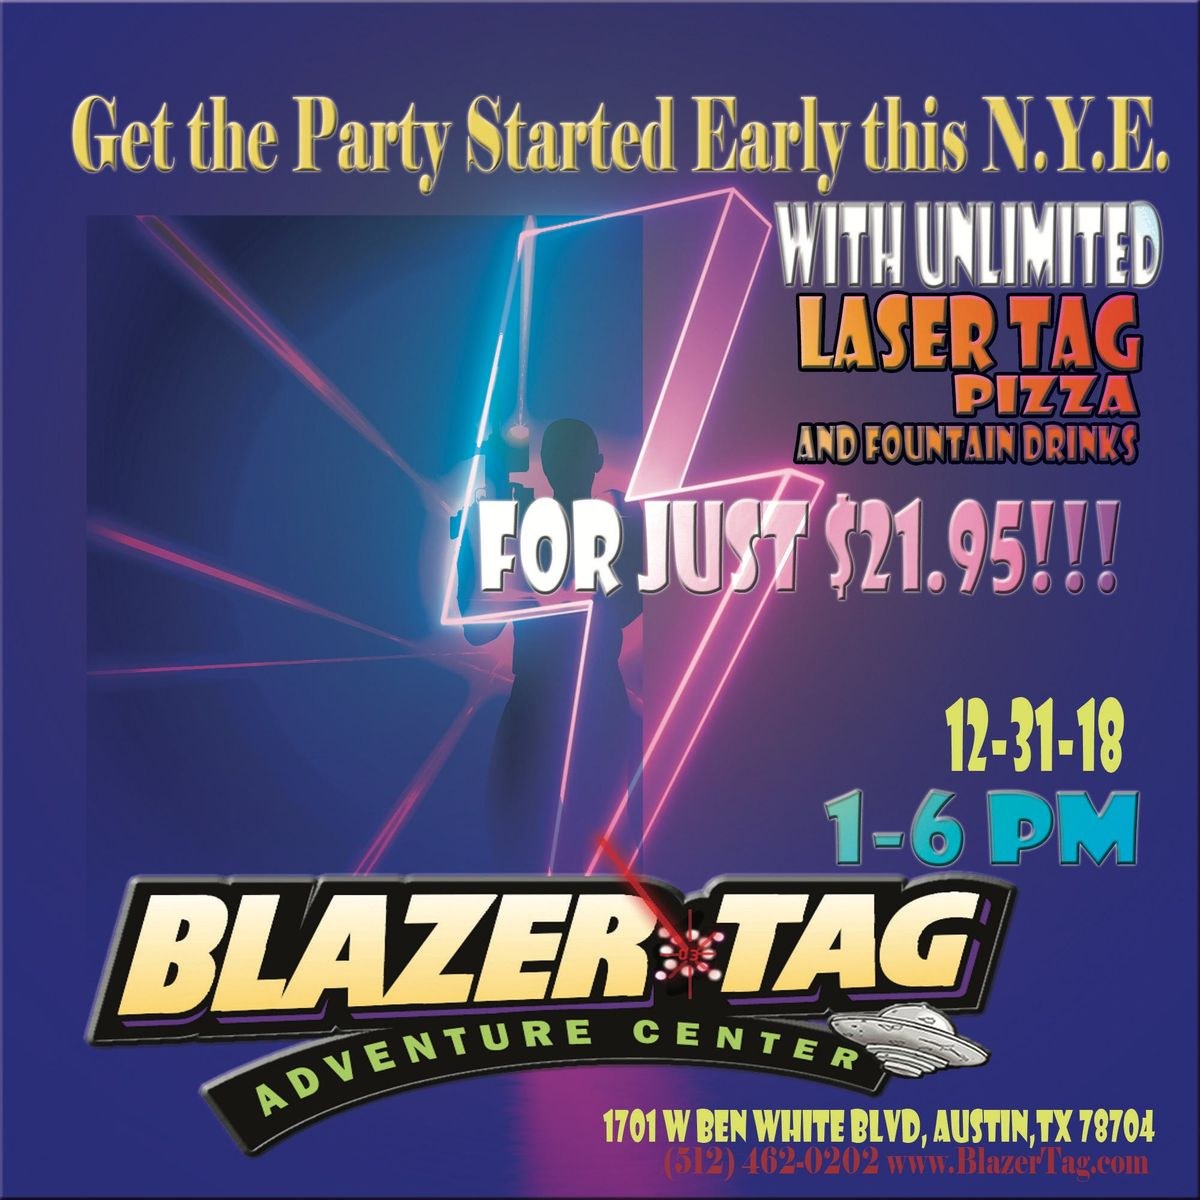 Bye-Bye 2018 Hello Cheap Fun Unlimited Laser Tag Pizza and Fountain Drinks for just 21.95